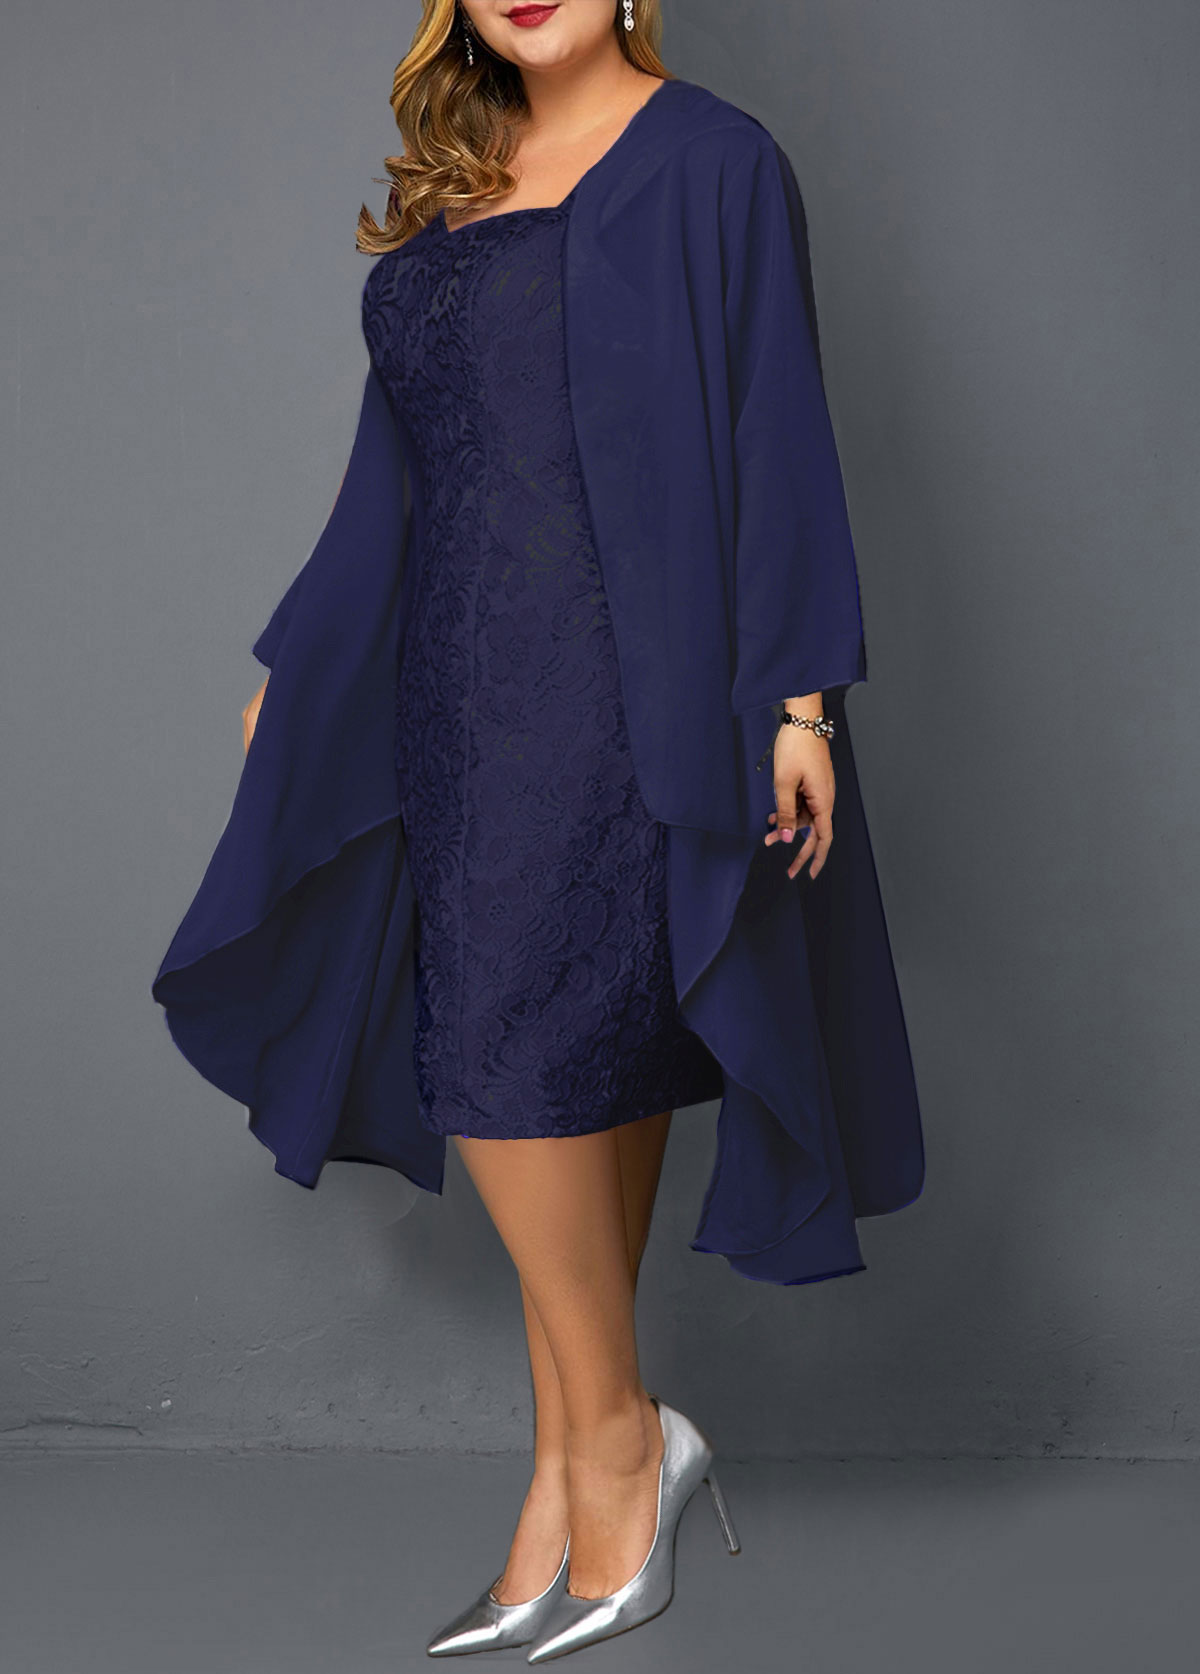 Plus Size Chiffon Cardigan and Sheath Dress